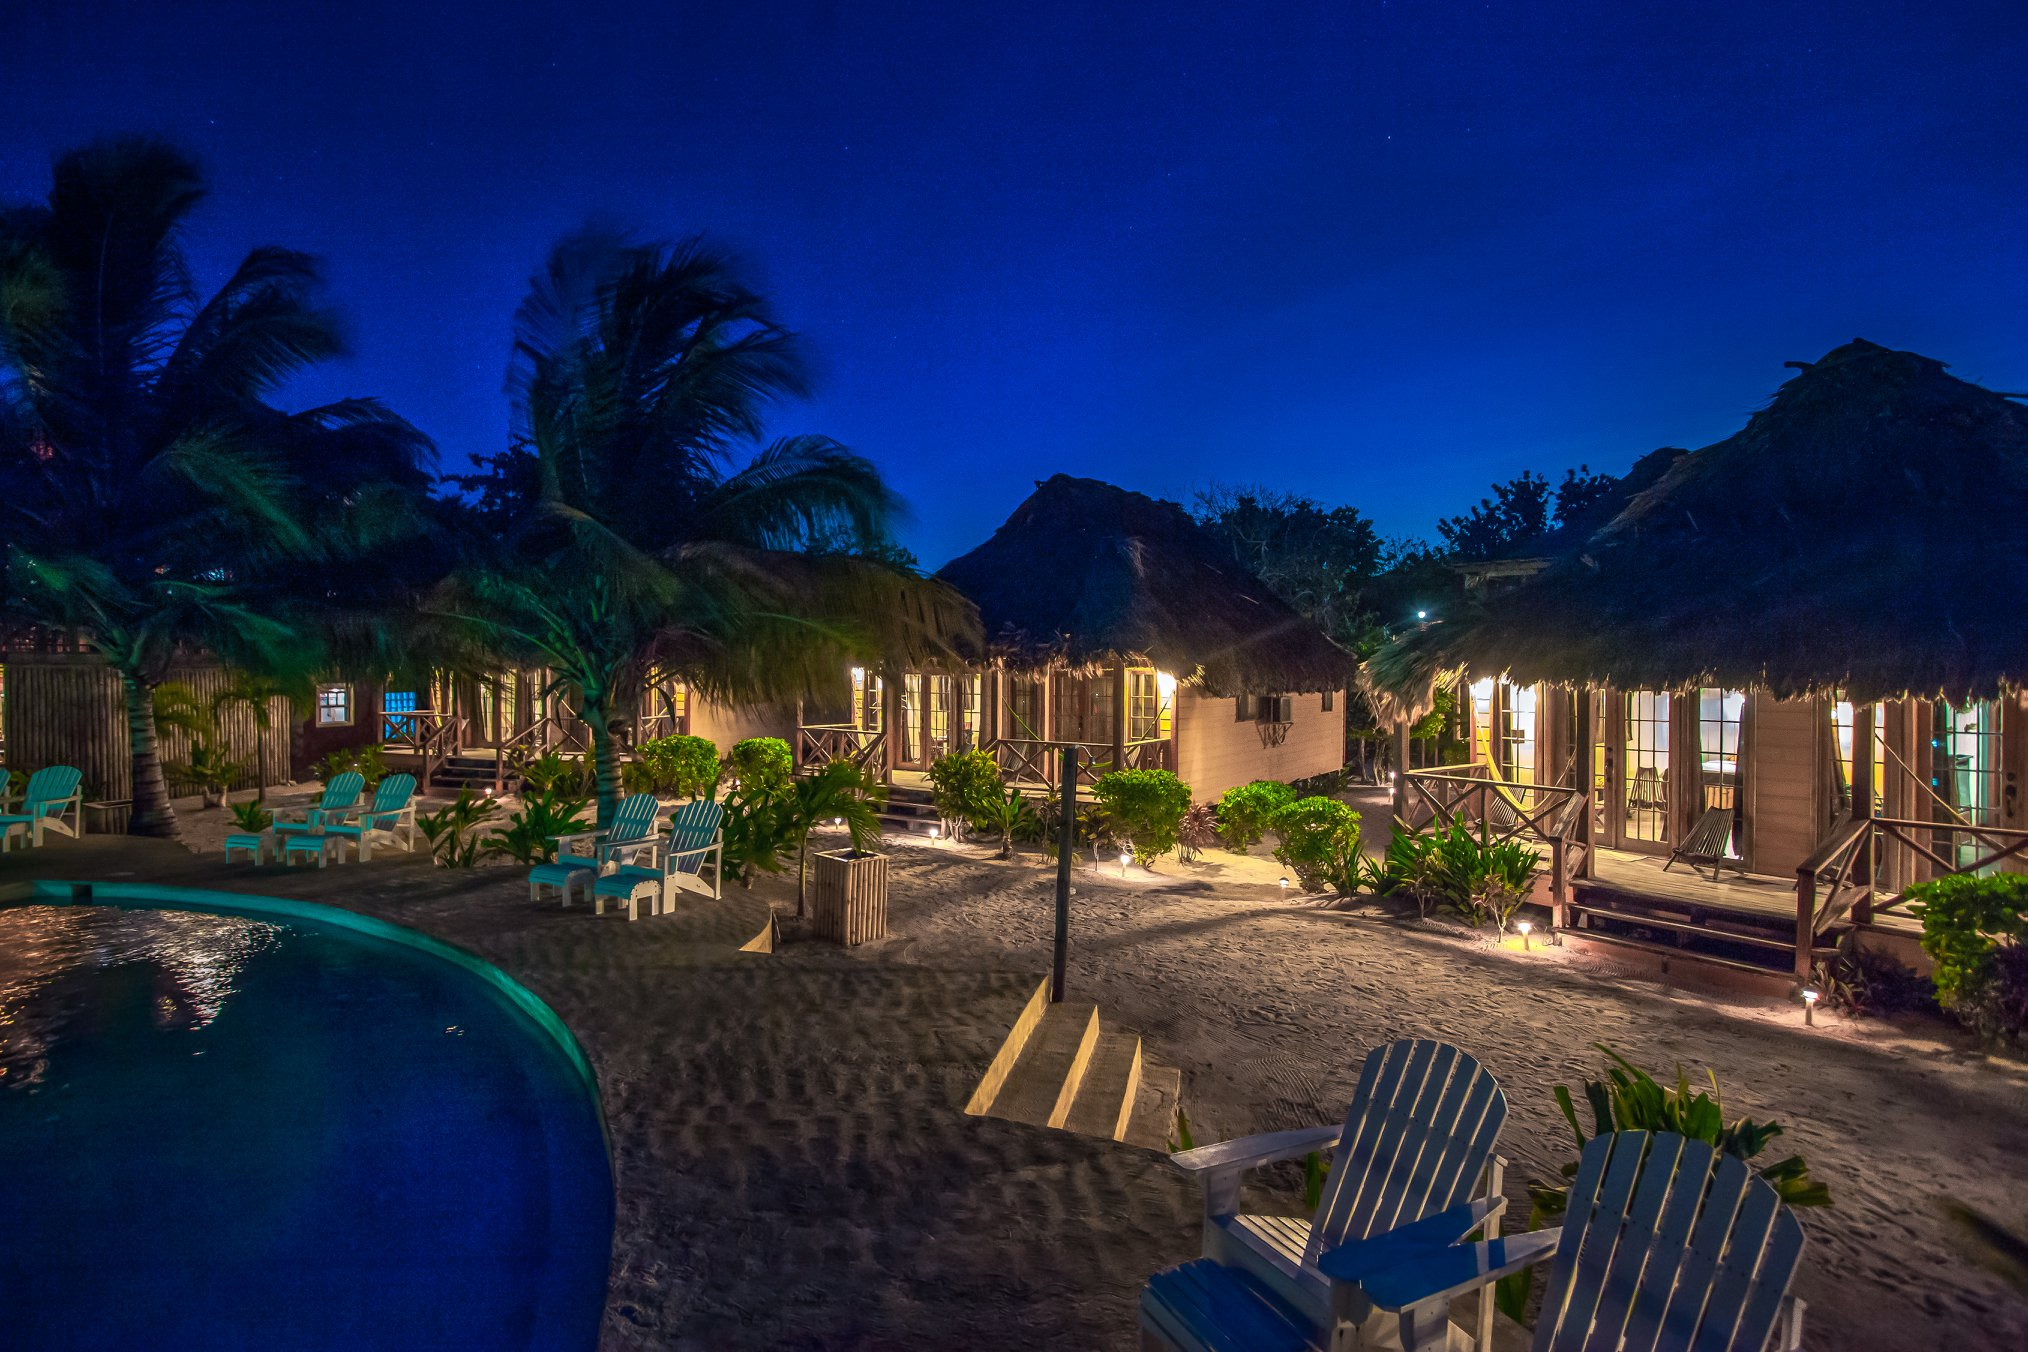 Sleep underneath a palapa roof at Portofino Beach Resort in Belize